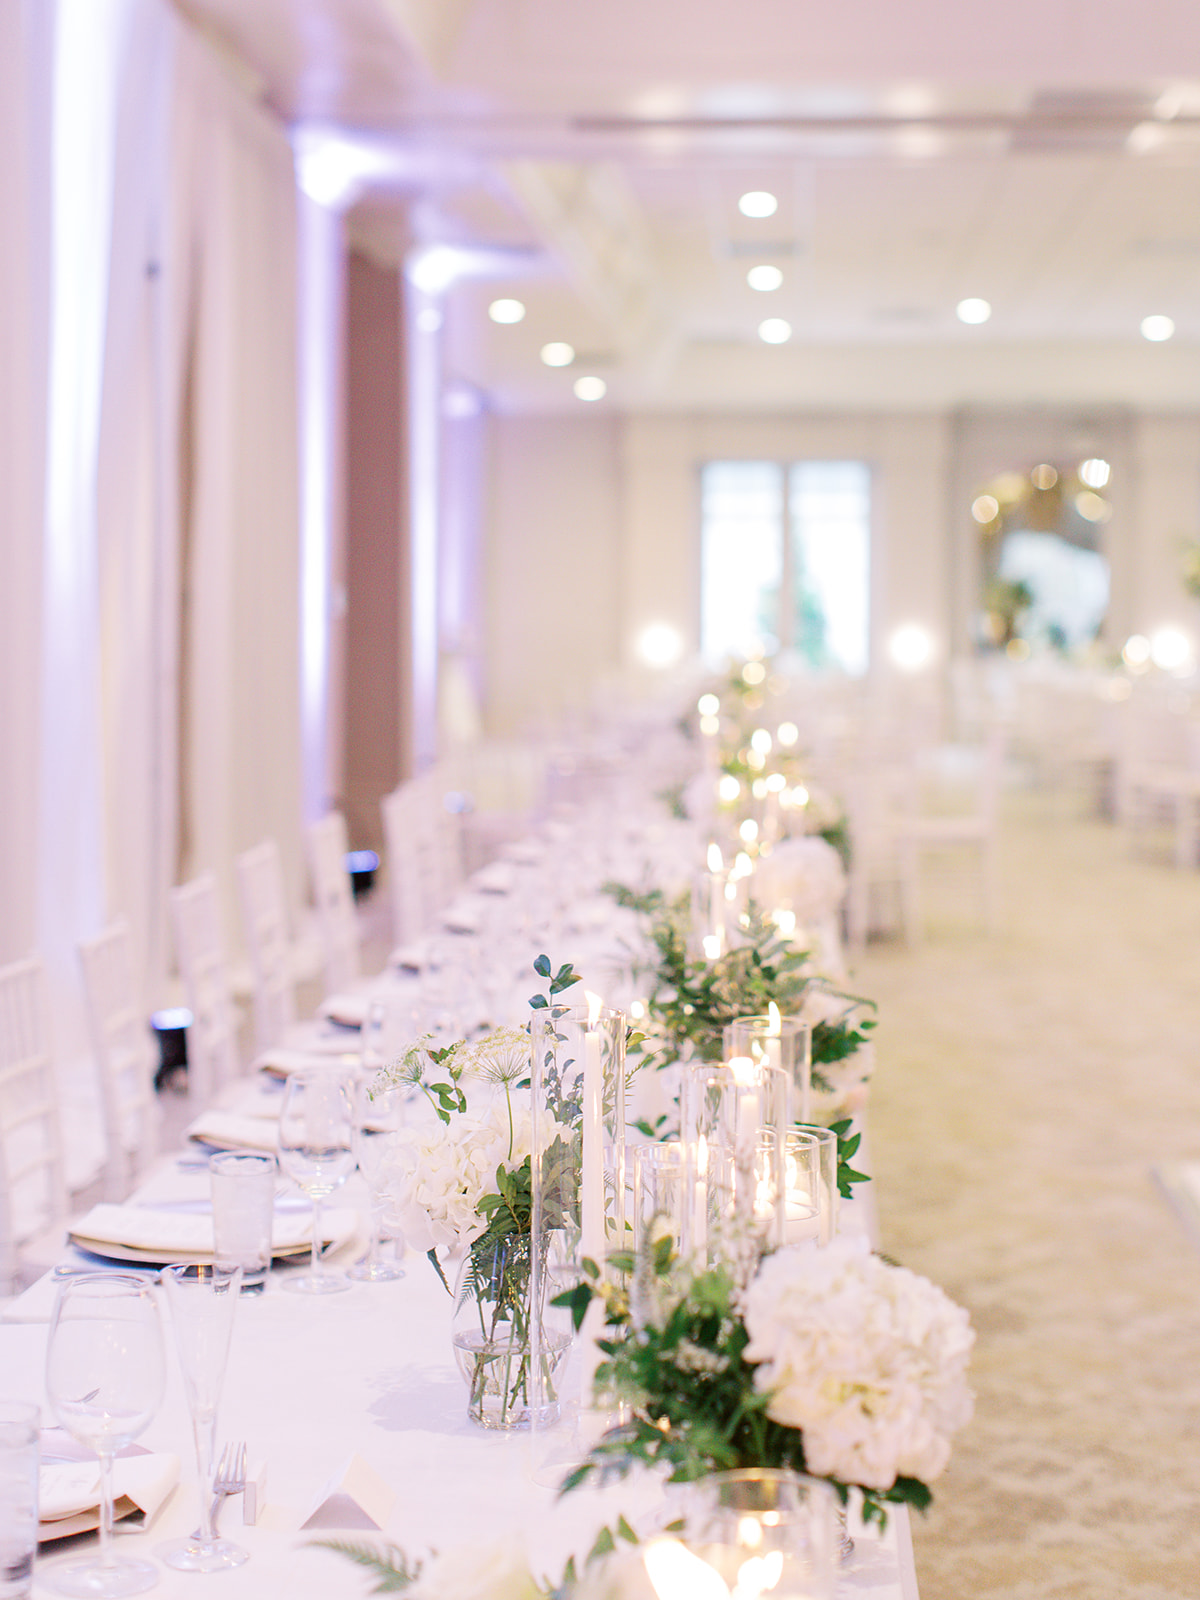 Head table candle and floral decor